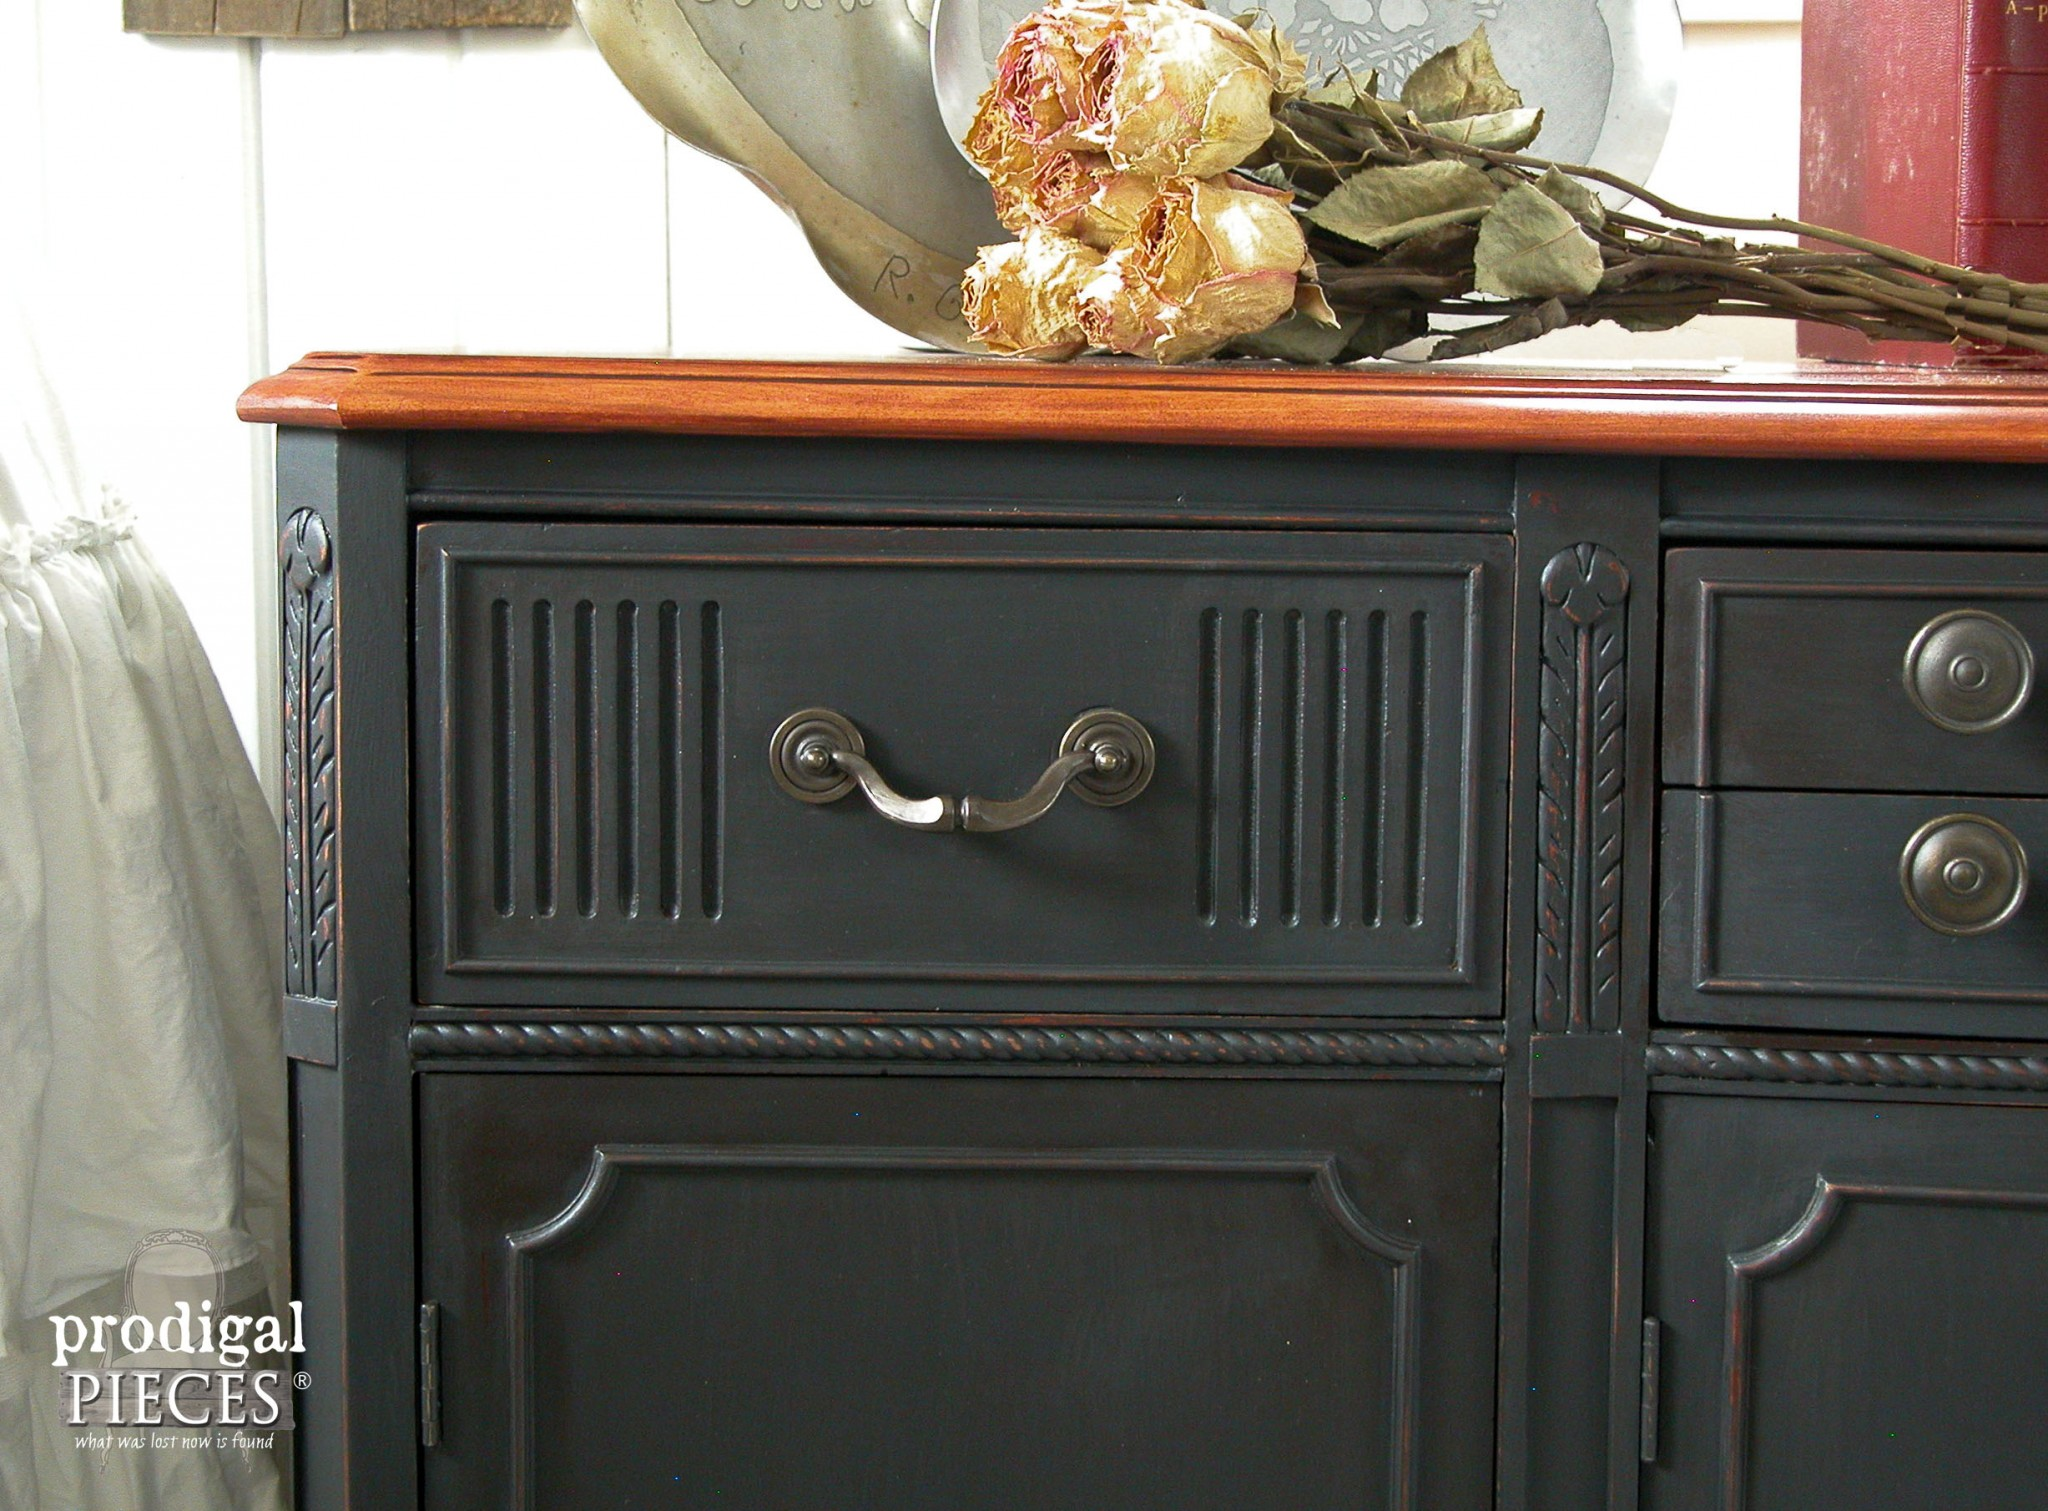 Corner of Vintage Black Buffet by Prodigal Pieces | www.prodigalpieces.com